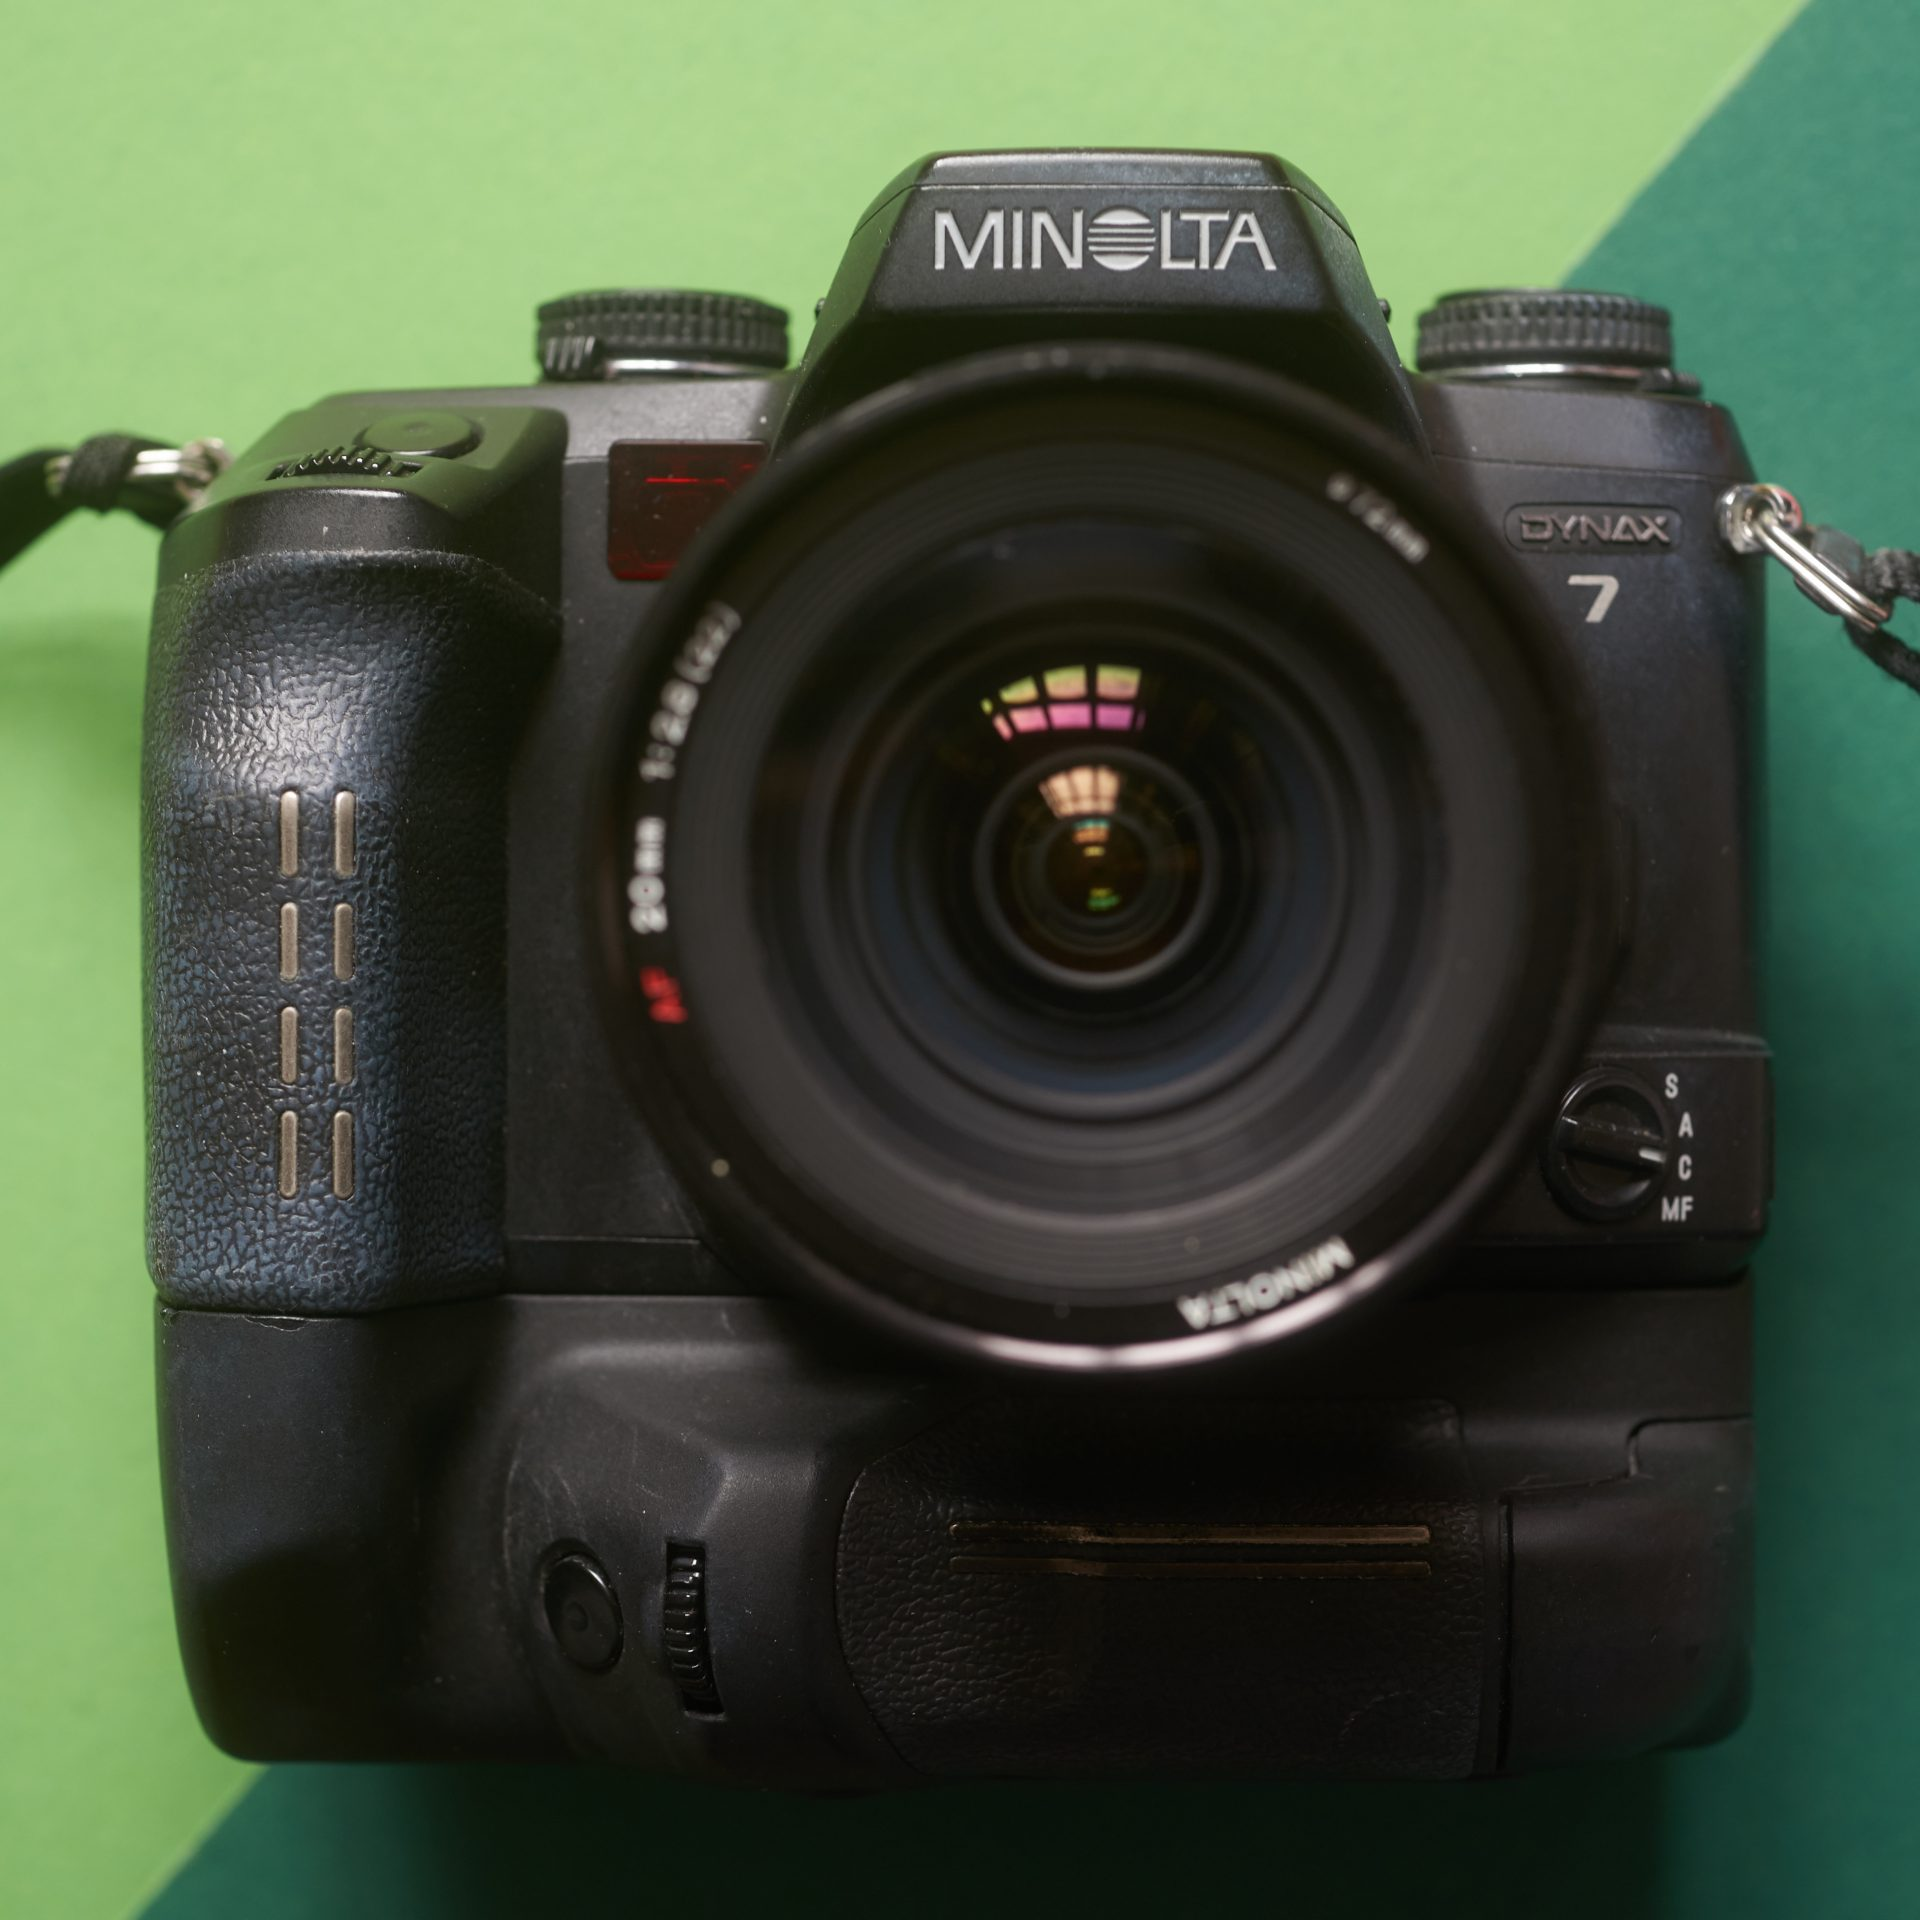 Minolta Dynax 7 Review (aka Minolta a-7 & Maxxum 7) - As good as it gets